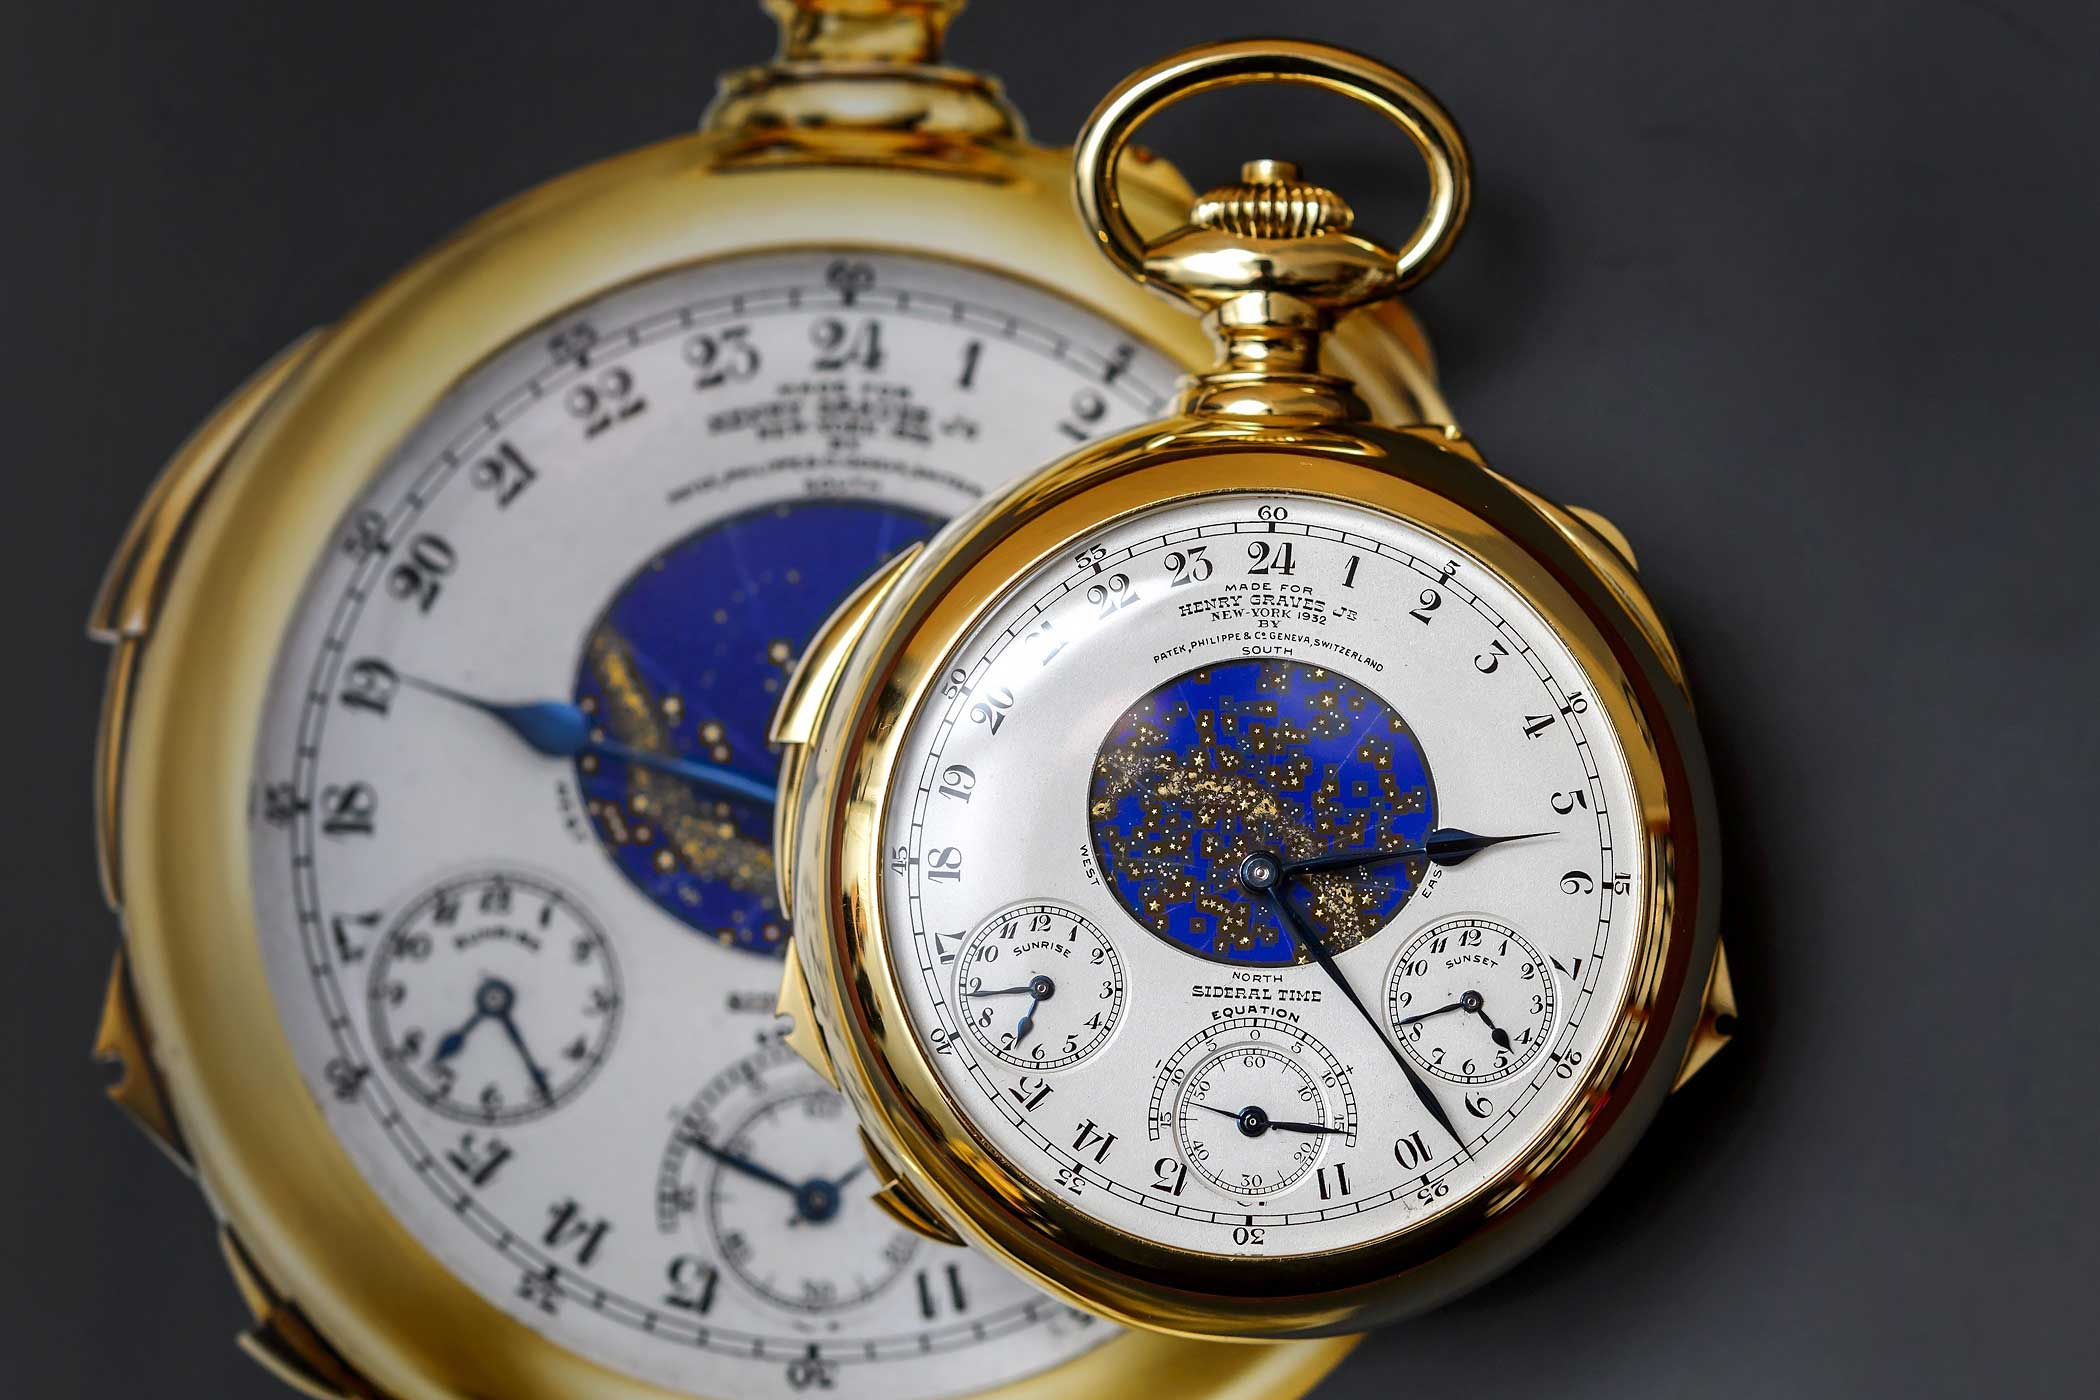 The Henry Graves Supercomplication timepiece made by Swiss watchmaker Patek Philippe in 1932 is photographied during a press preview by Sotheby's auction house on November 5, 2014 in Geneva.